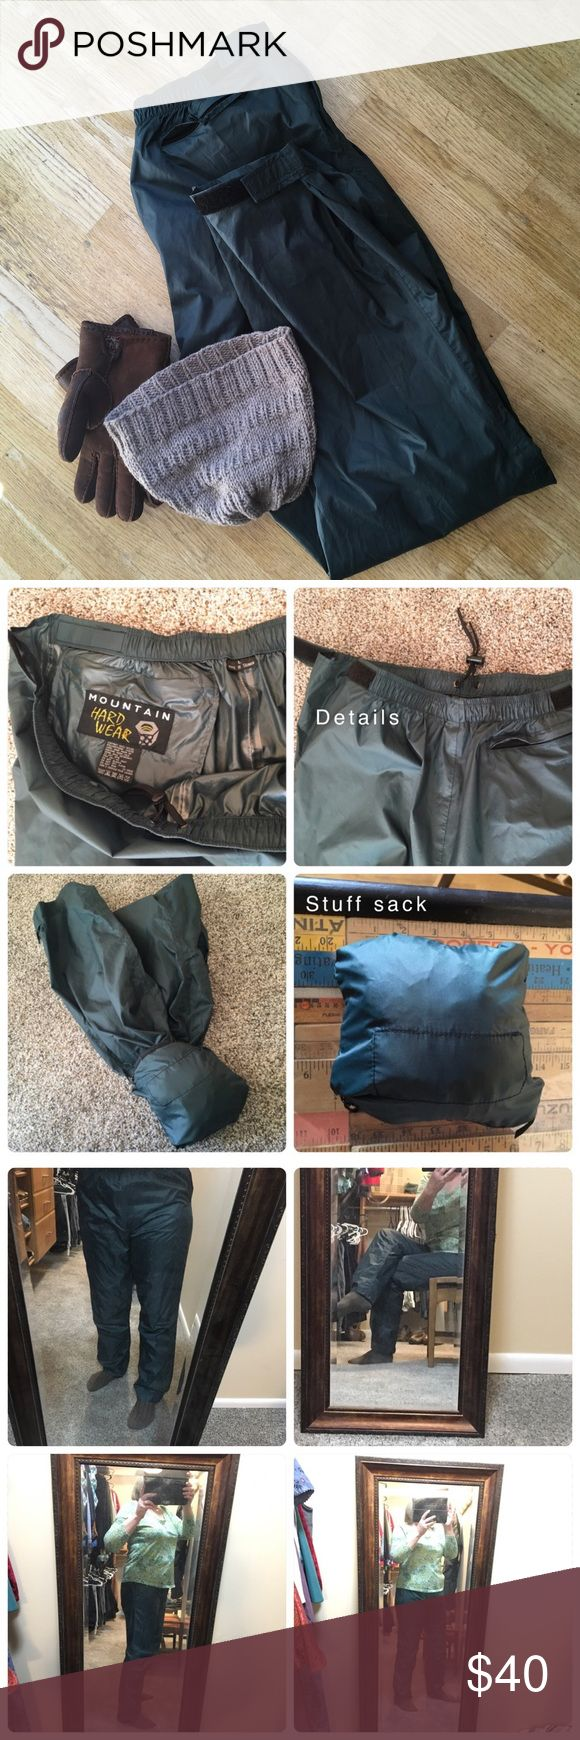 """🍫 Rain Pants by Mountain Hard Wear Quick slip on pant with pull on waist construction with adjustability. The Velcro closures at waist and cuff seal away the elements. Fabric is 100 % nylon. Color is dark green as shown in first photo. Zippered back pocket can also be used as a stuff sack to make it easy to pack along for the unexpected rain storm when out and about. Measurements are 13"""" front rise from top of waist to seam between the legs, inseam 31.5"""", waist flat then doubled 33"""". Comes…"""